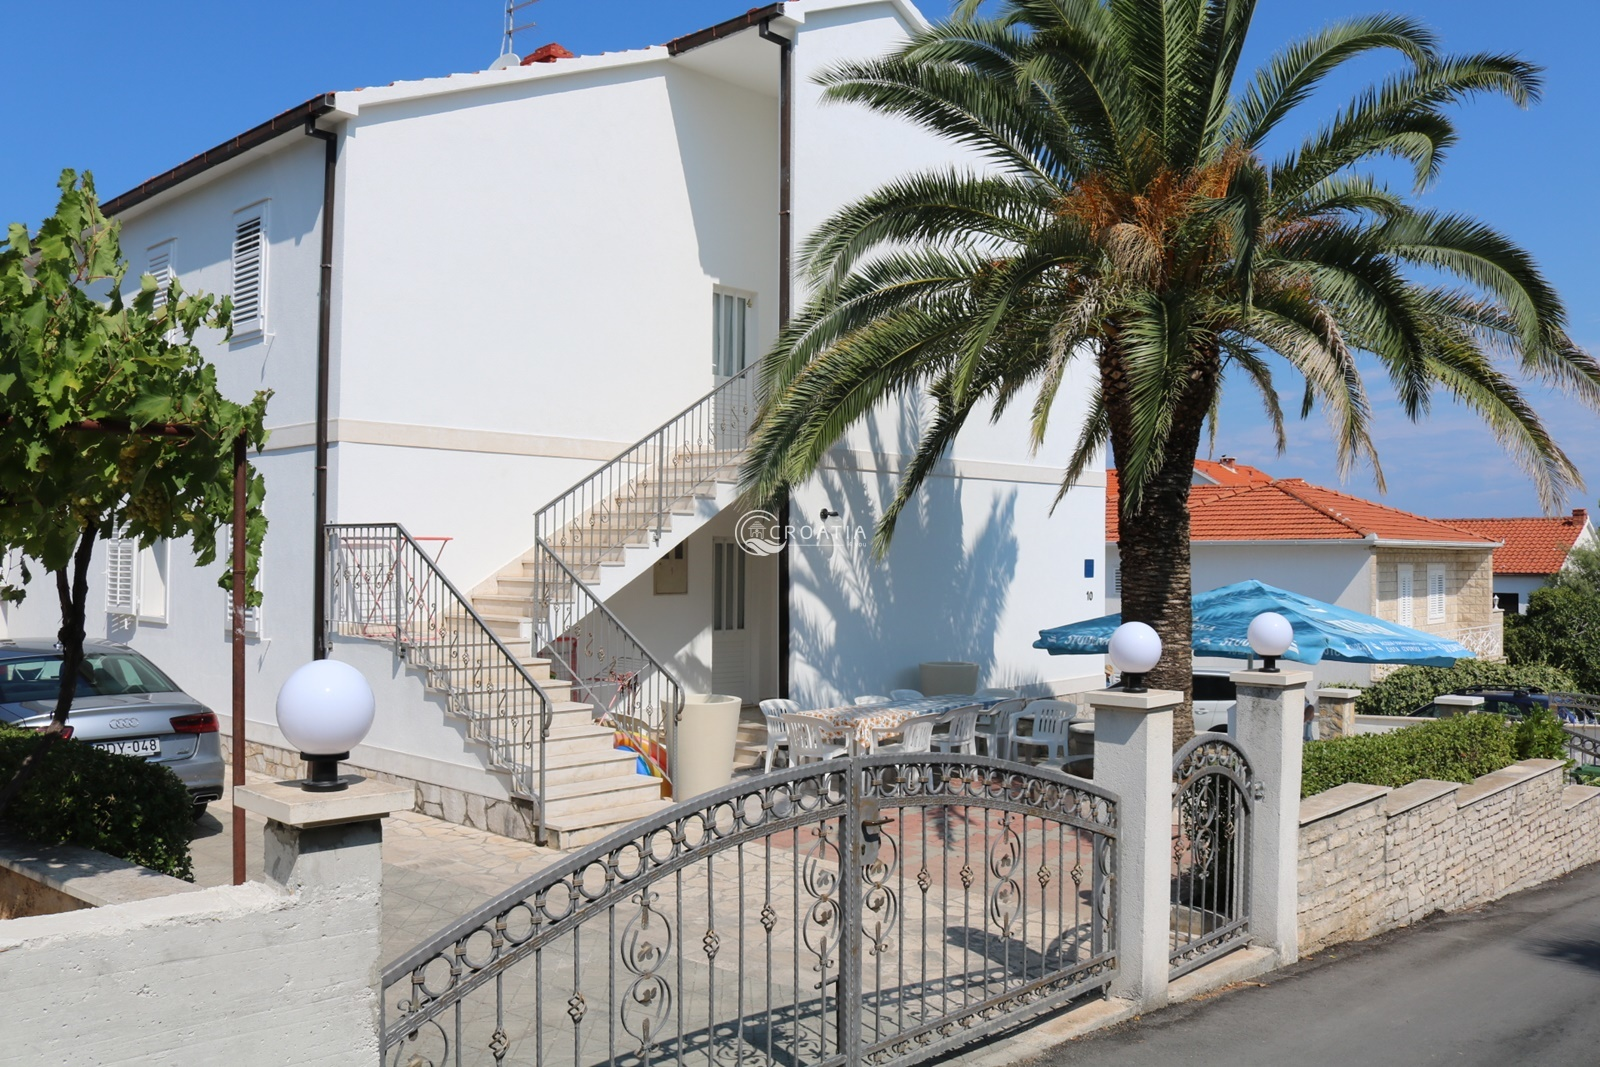 House with apartments in Supetar on island Brač